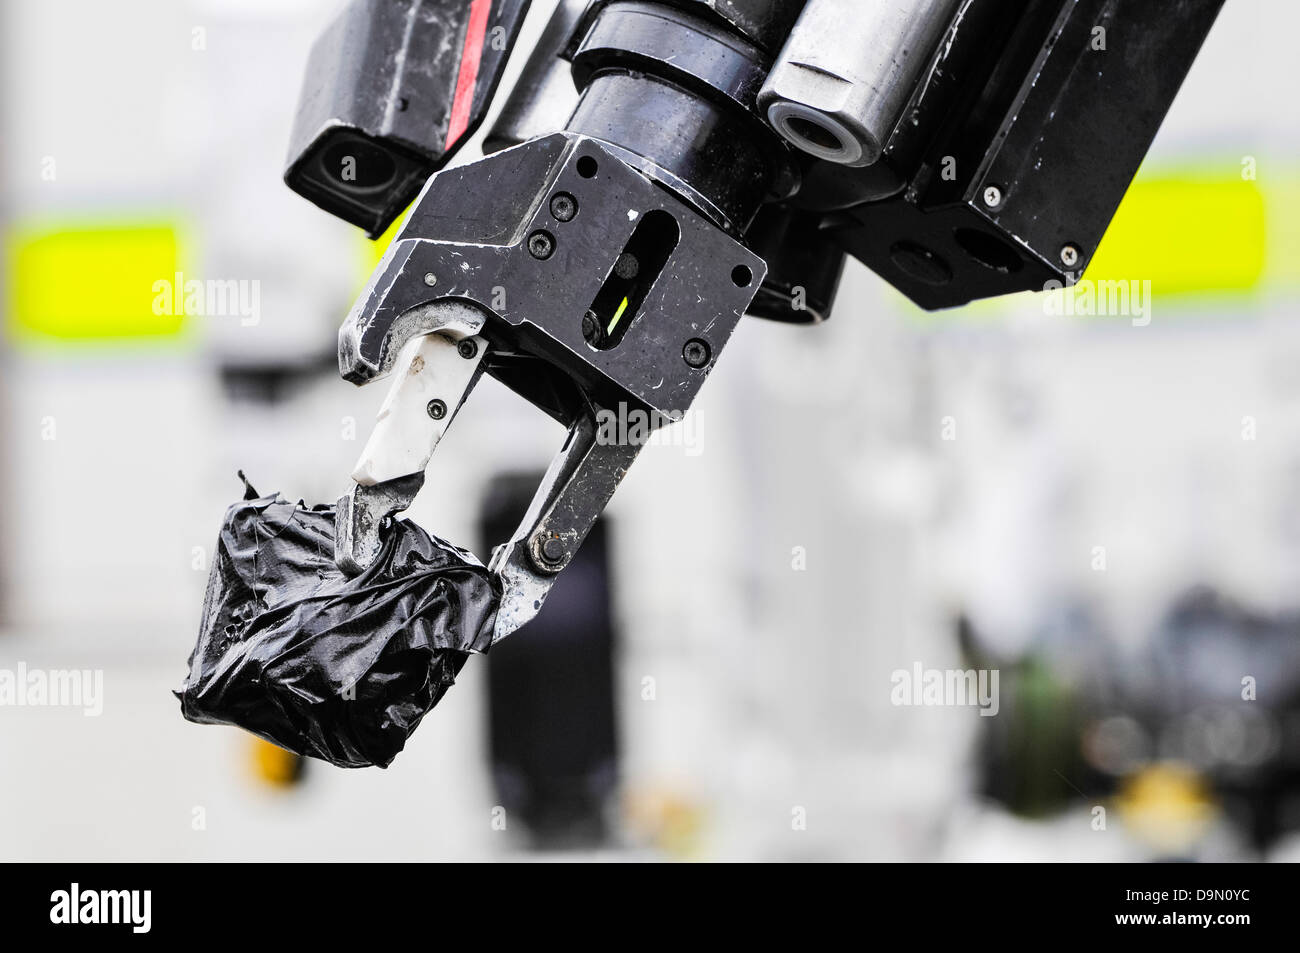 Pincer grip of an army bomb disposal robot holds a suspect object wrapped in tape - Stock Image